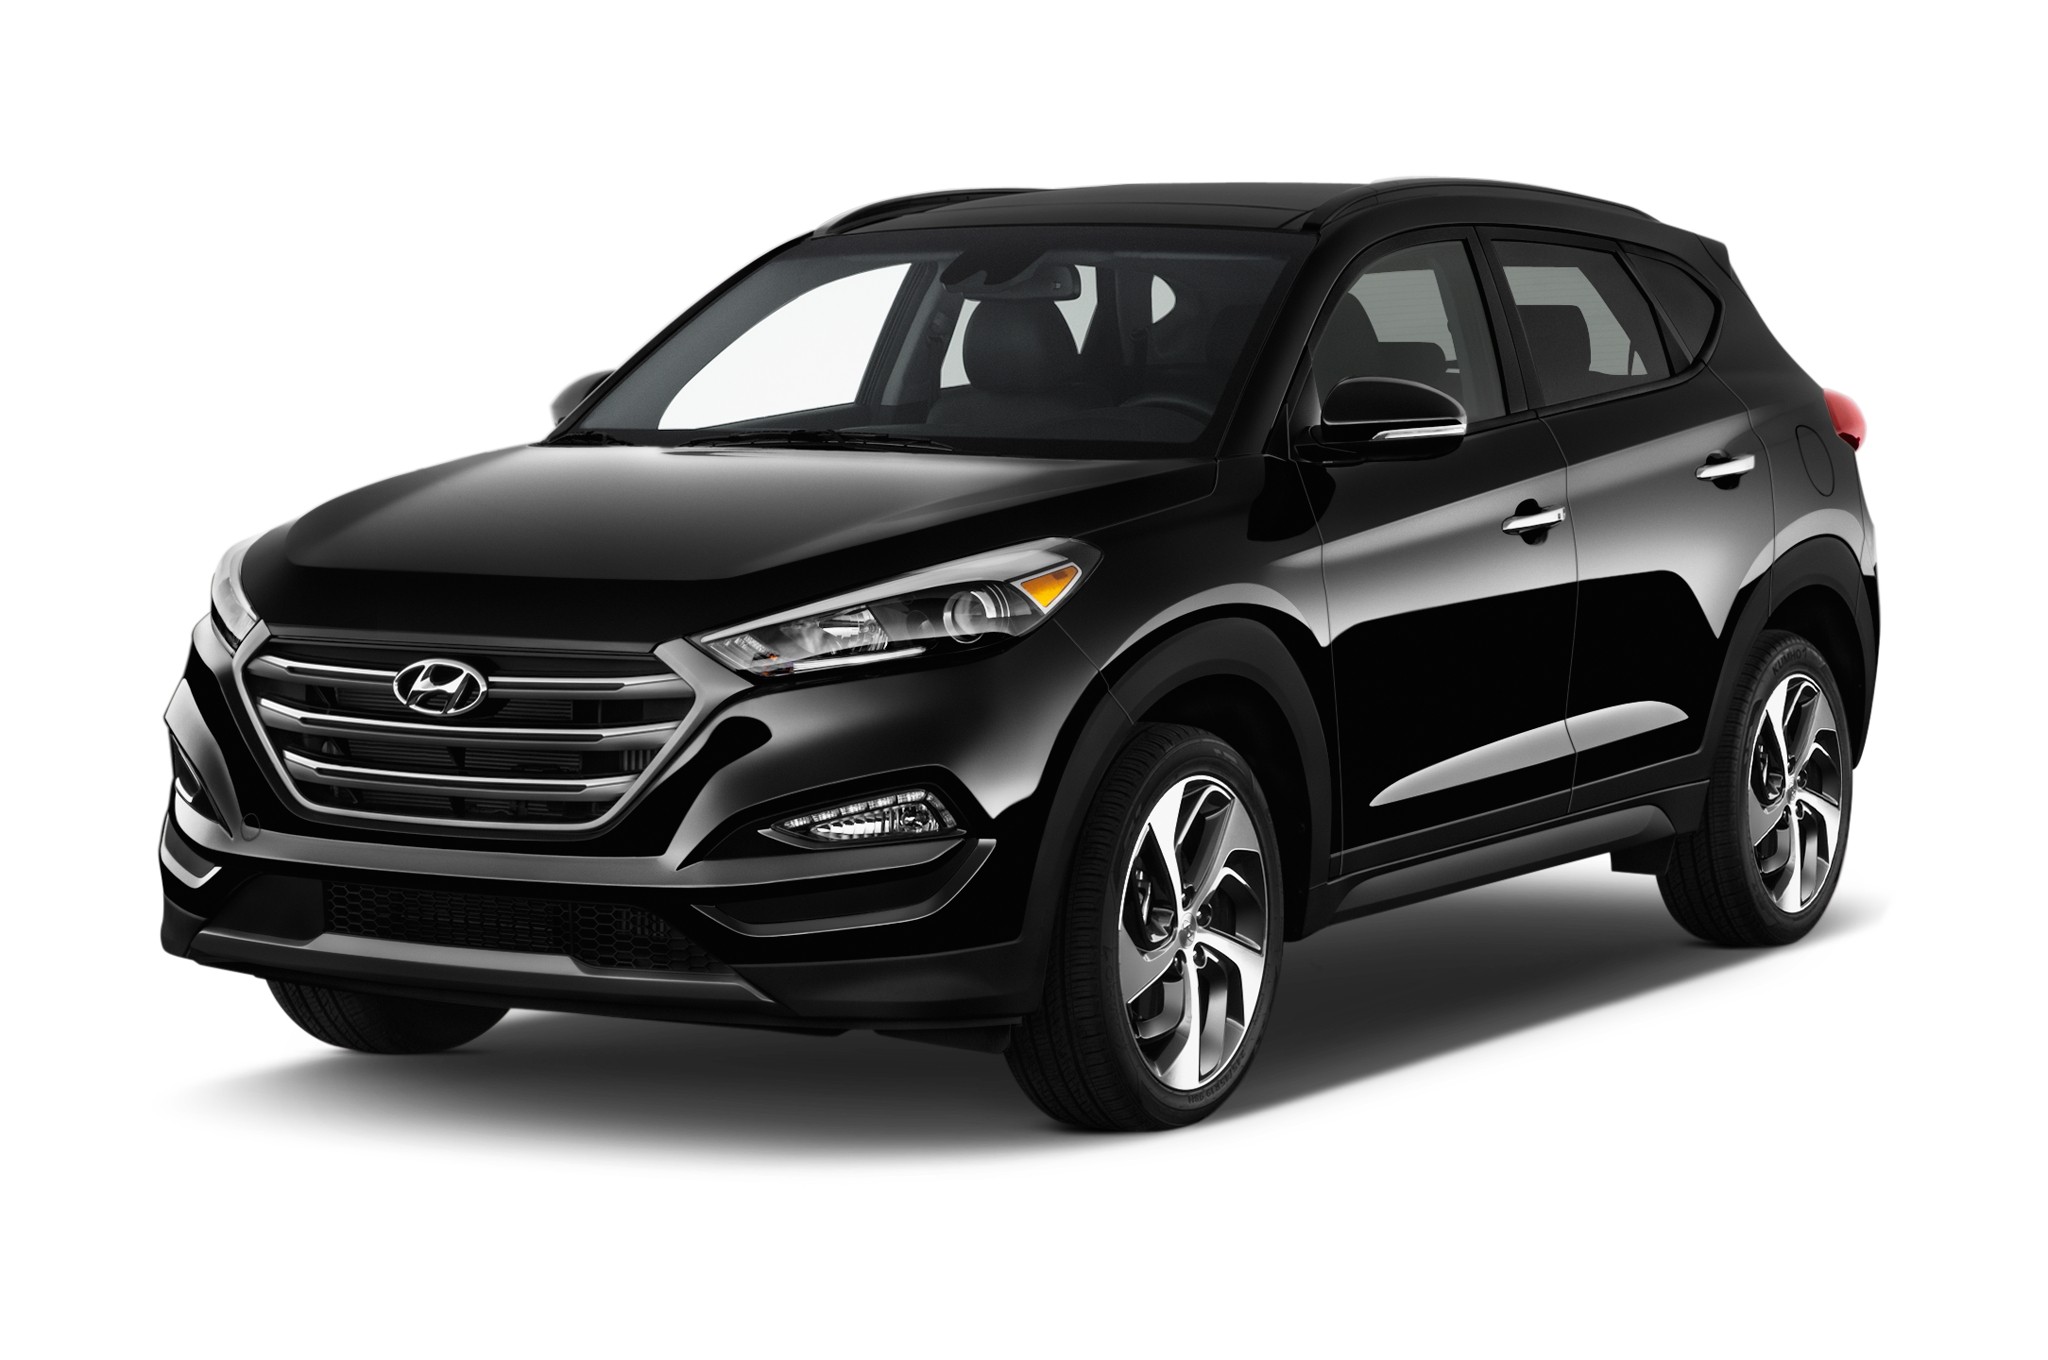 2017 Hyundai Tucson Reviews.